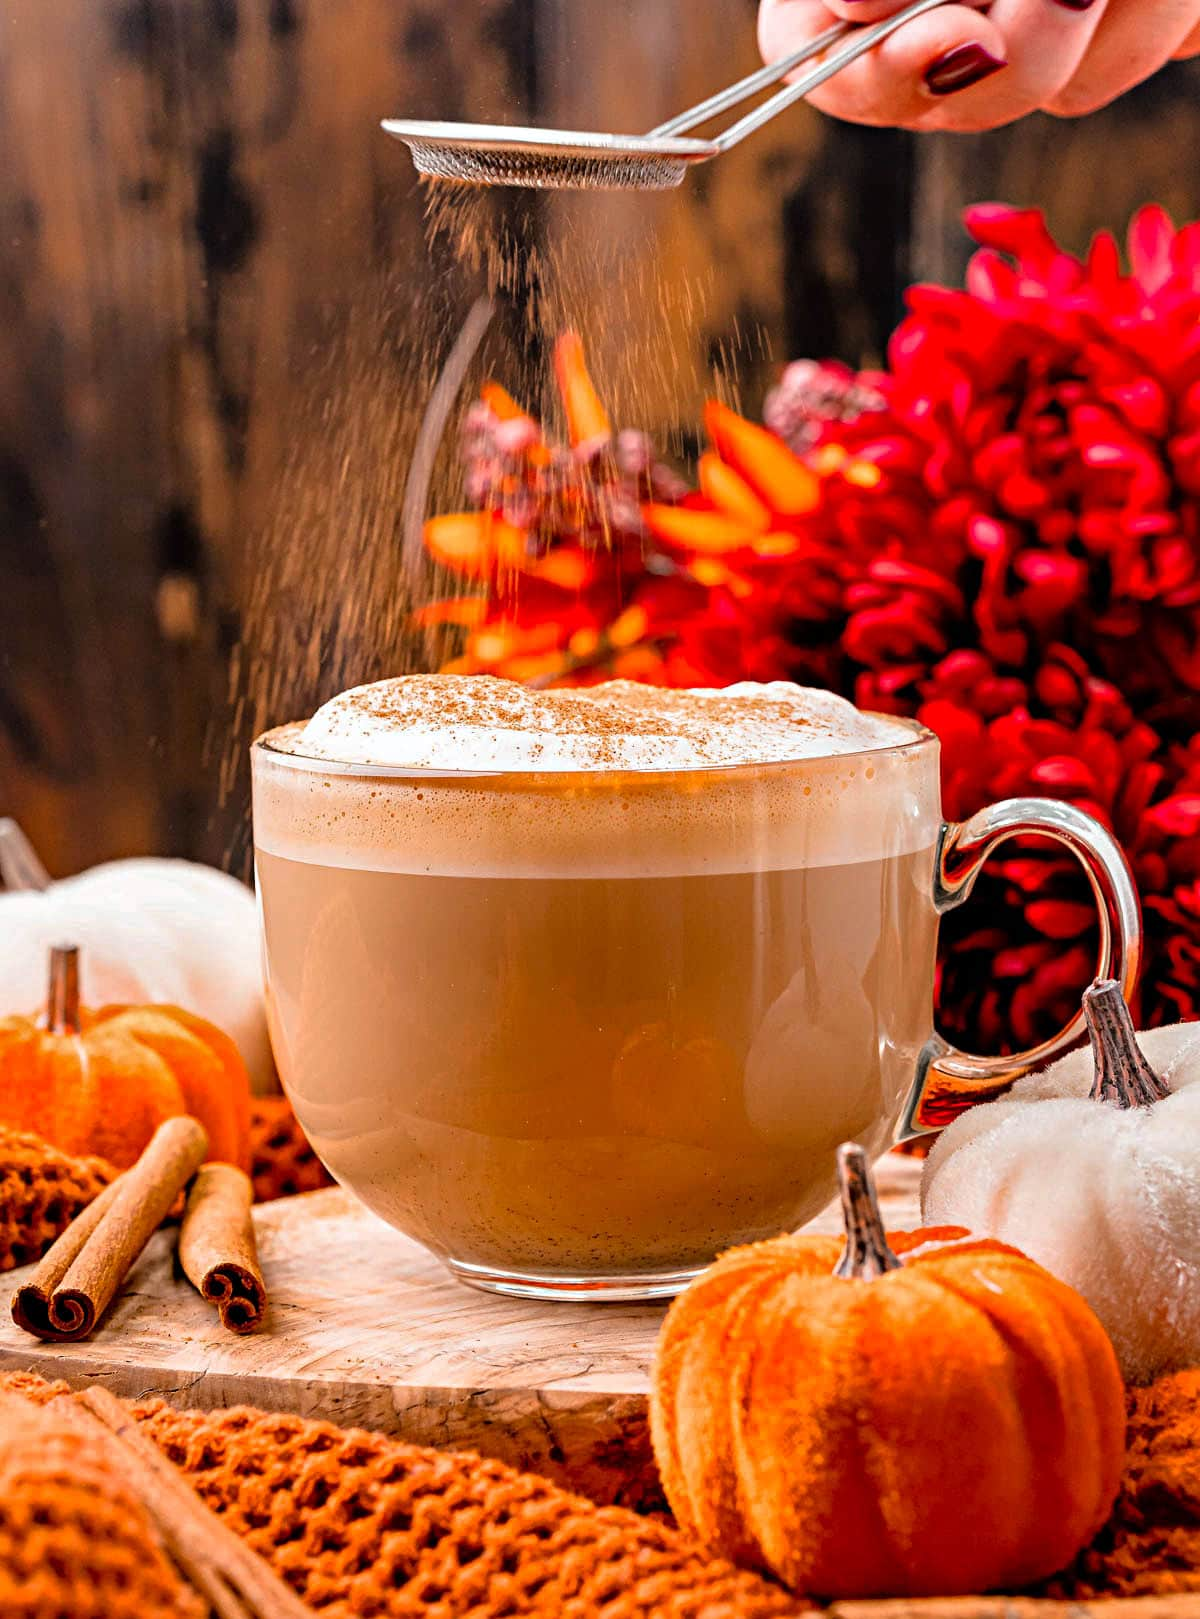 pumpkin spice latte in glass mug with pumpkin spice being dusted on top of the foam topping. colorful fall flowers in background and small velvet pumpkins scattered about.